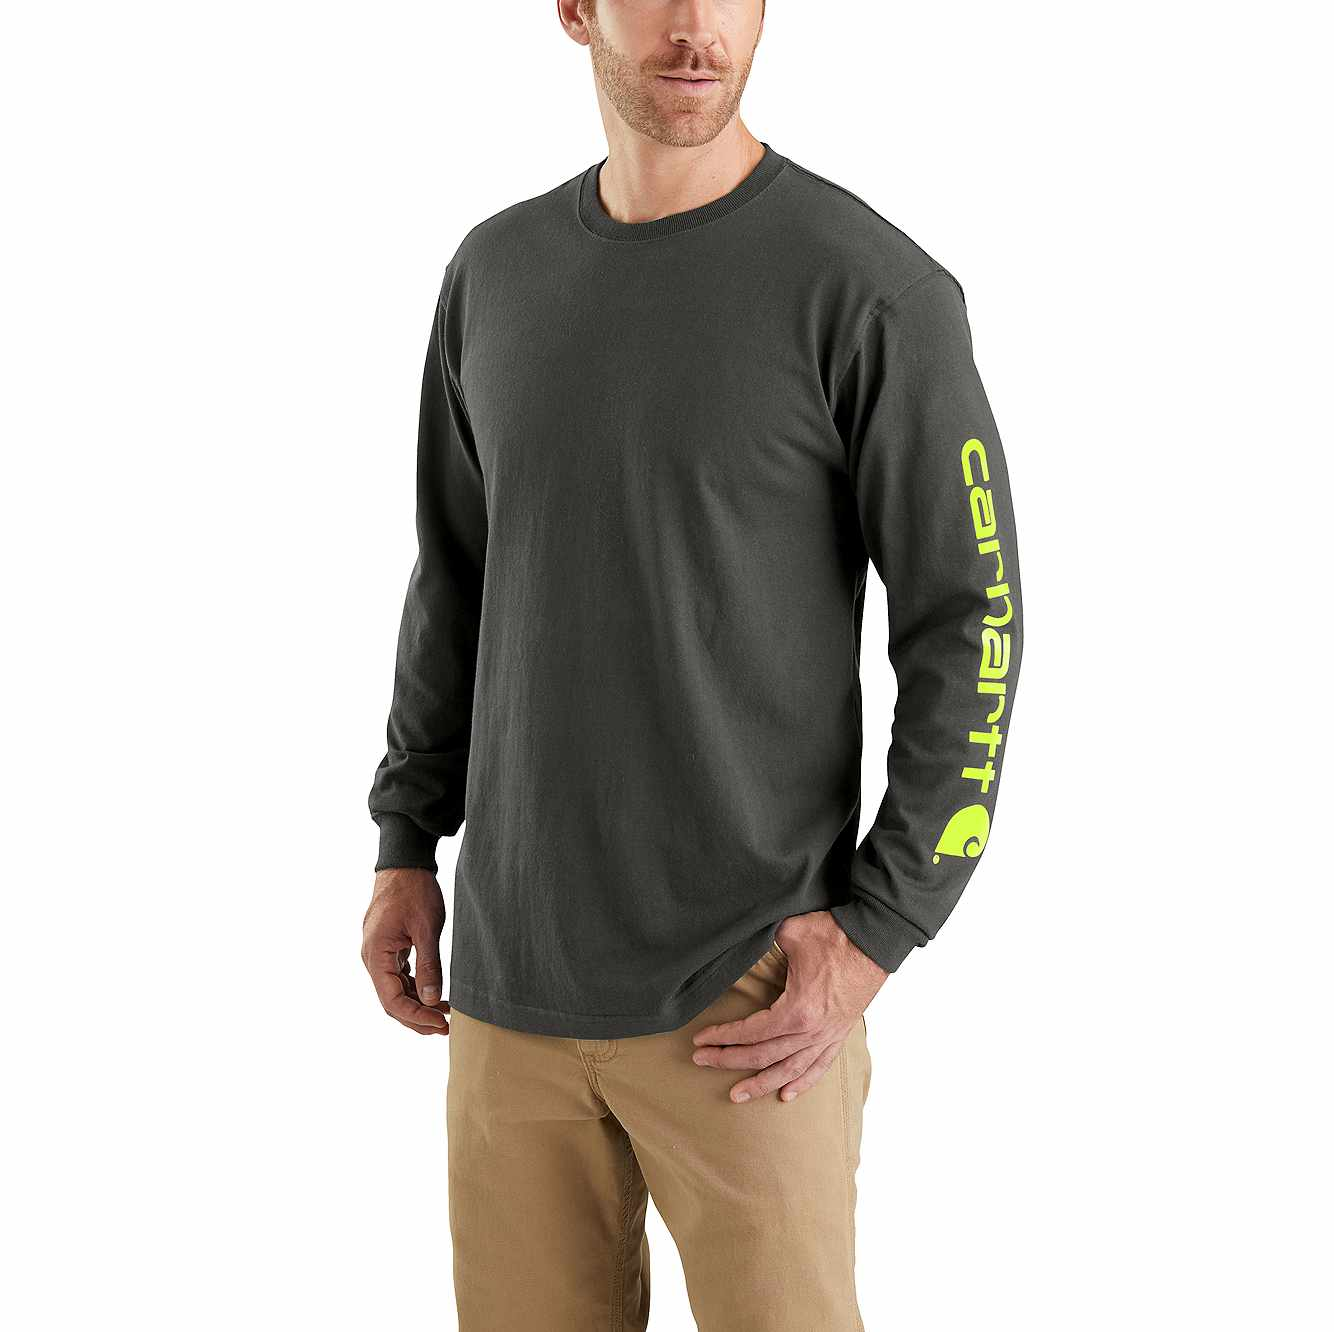 Picture of Loose Fit Heavyweight Long-Sleeve Logo Sleeve Graphic T-Shirt in Peat